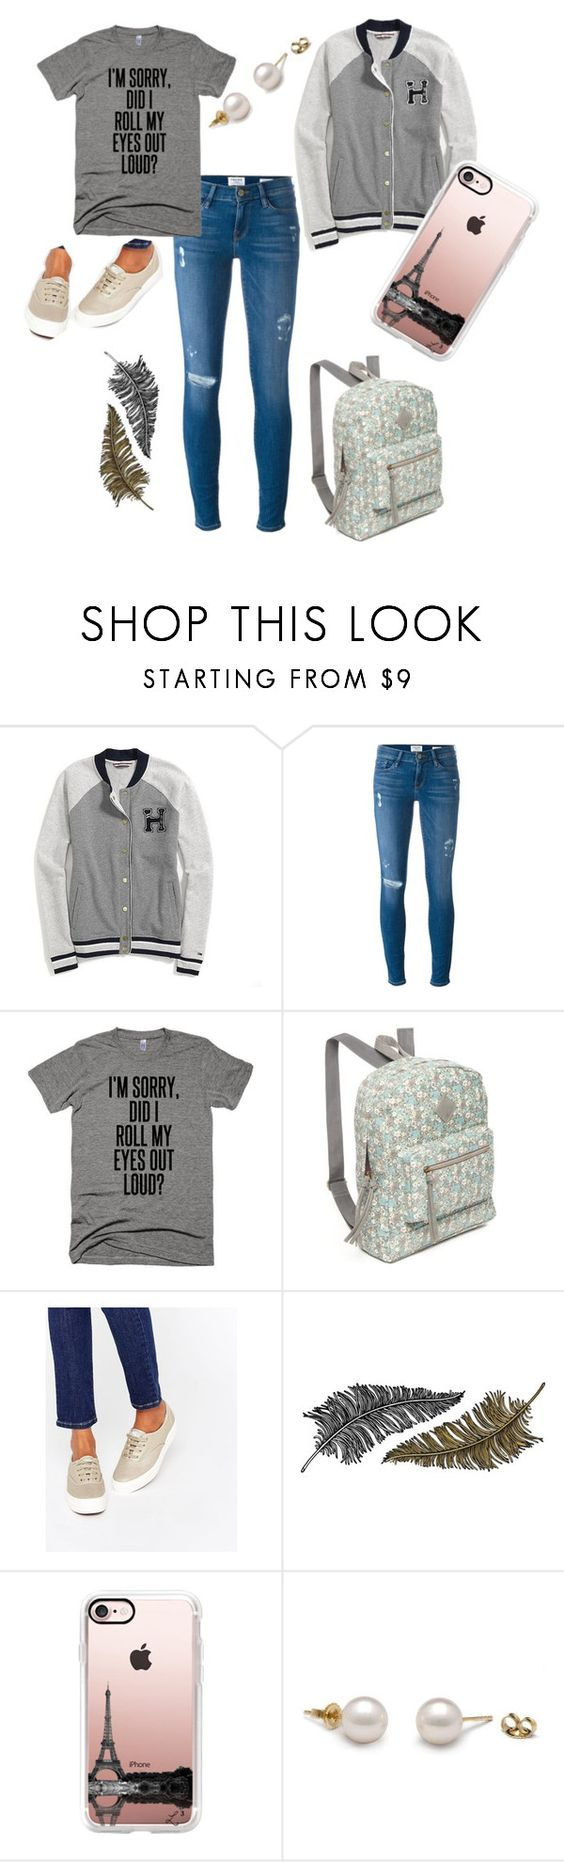 """""""Sin título #58"""" by clara-bidault on Polyvore featuring moda, Tommy Hilfiger, Frame Denim, Red Camel, Keds, Paperself y Casetify"""